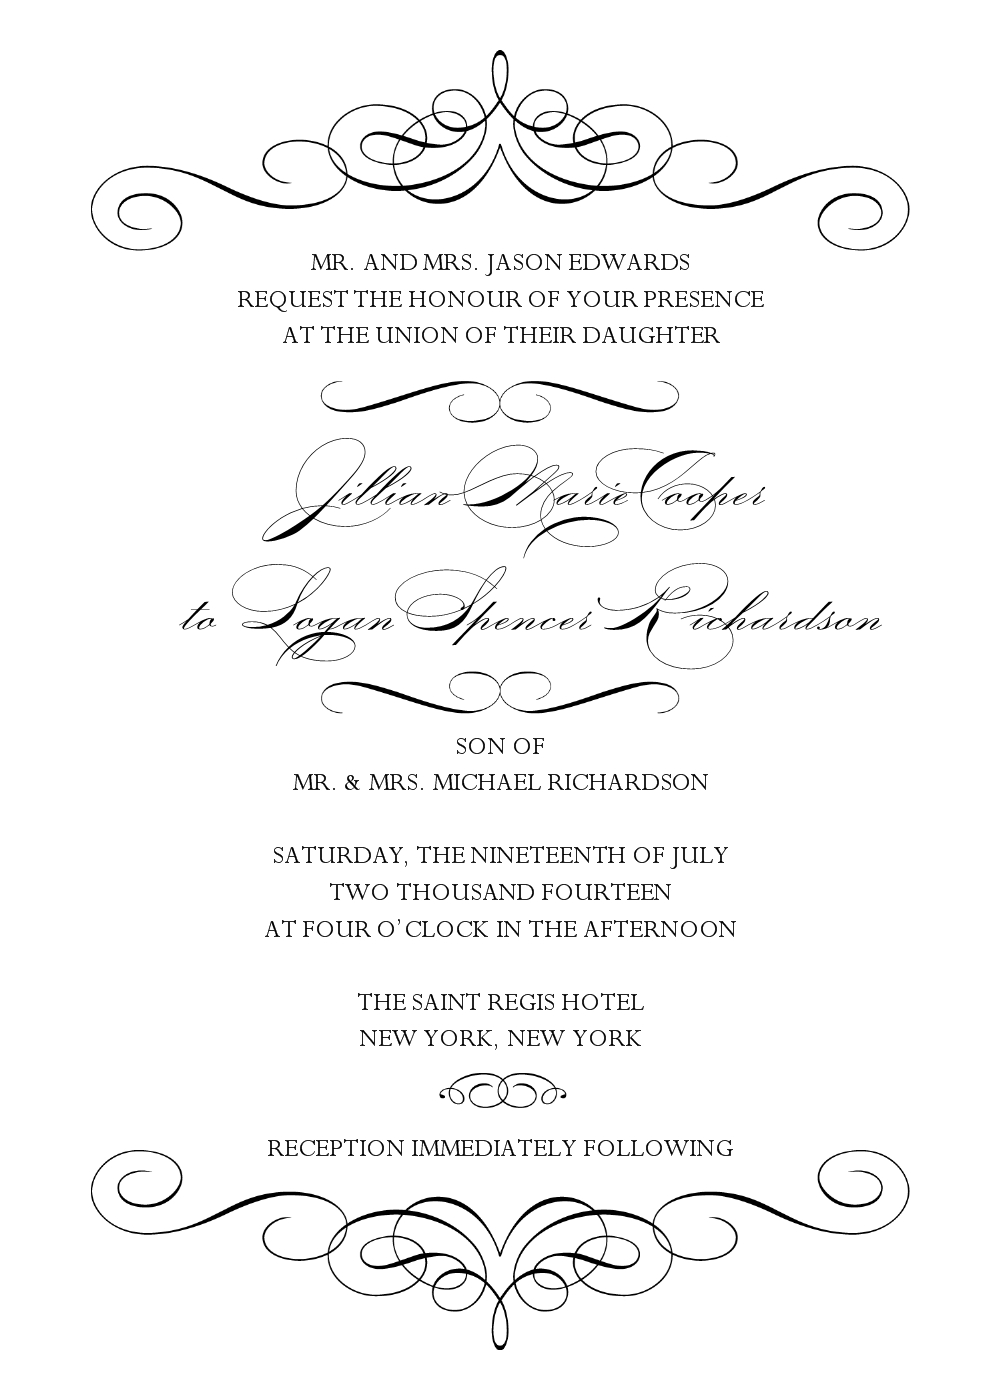 023 Template Ideas Ms Word Wedding Invitation Templates Free Blank - Free Printable Wedding Invitation Templates For Microsoft Word